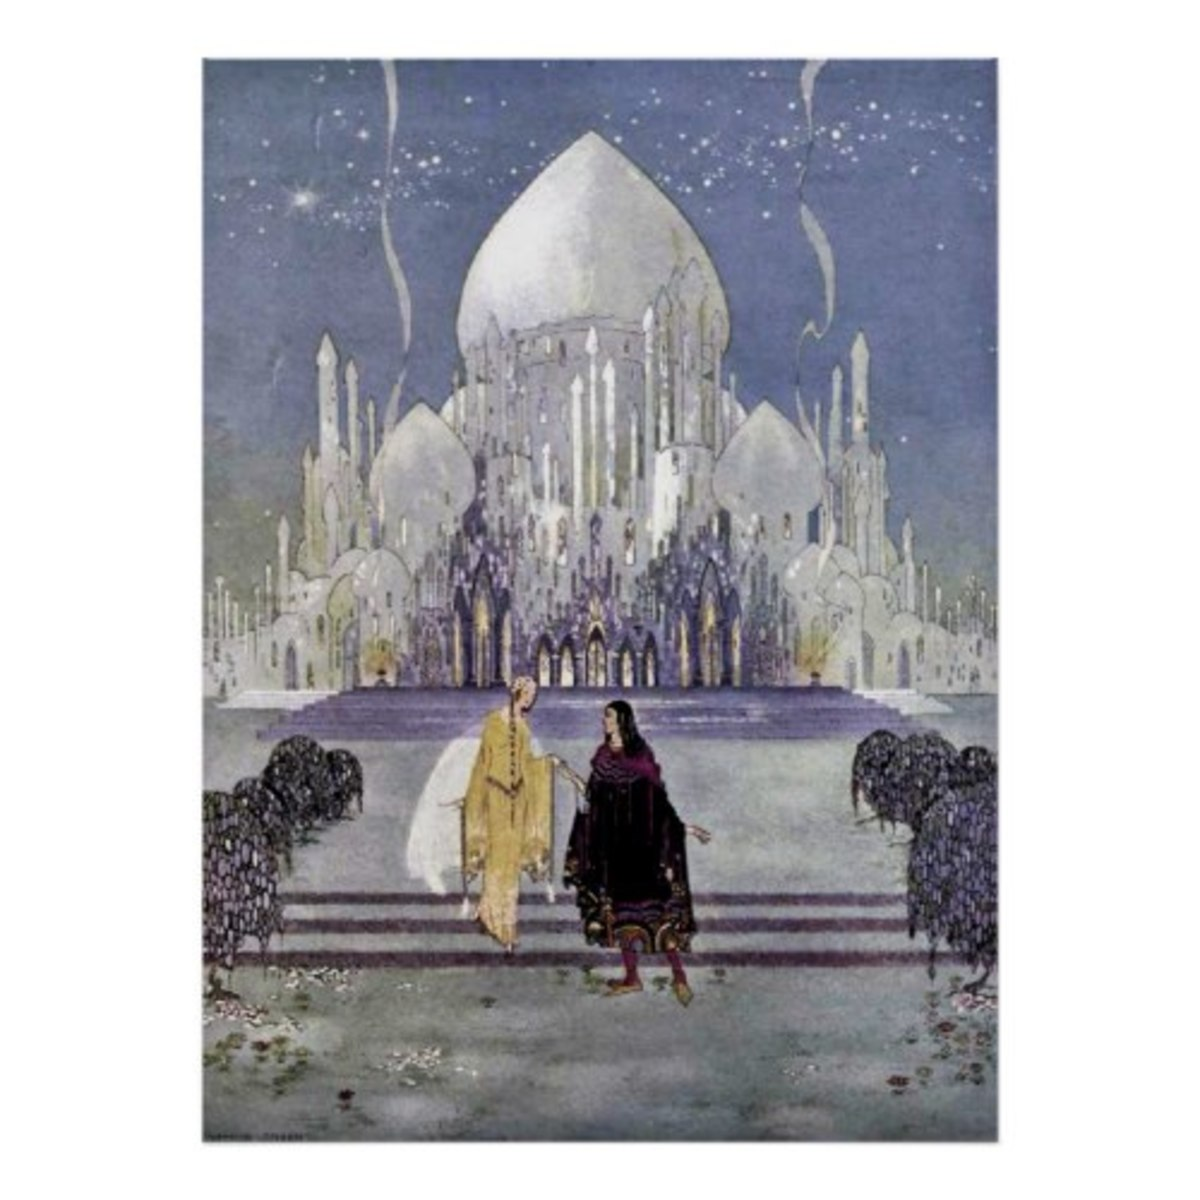 Illustration with Orientalism influences. Virginia Frances Sterrett was an early twentieth century illustrator who is best known for her pictures depicting the Arabian Nights